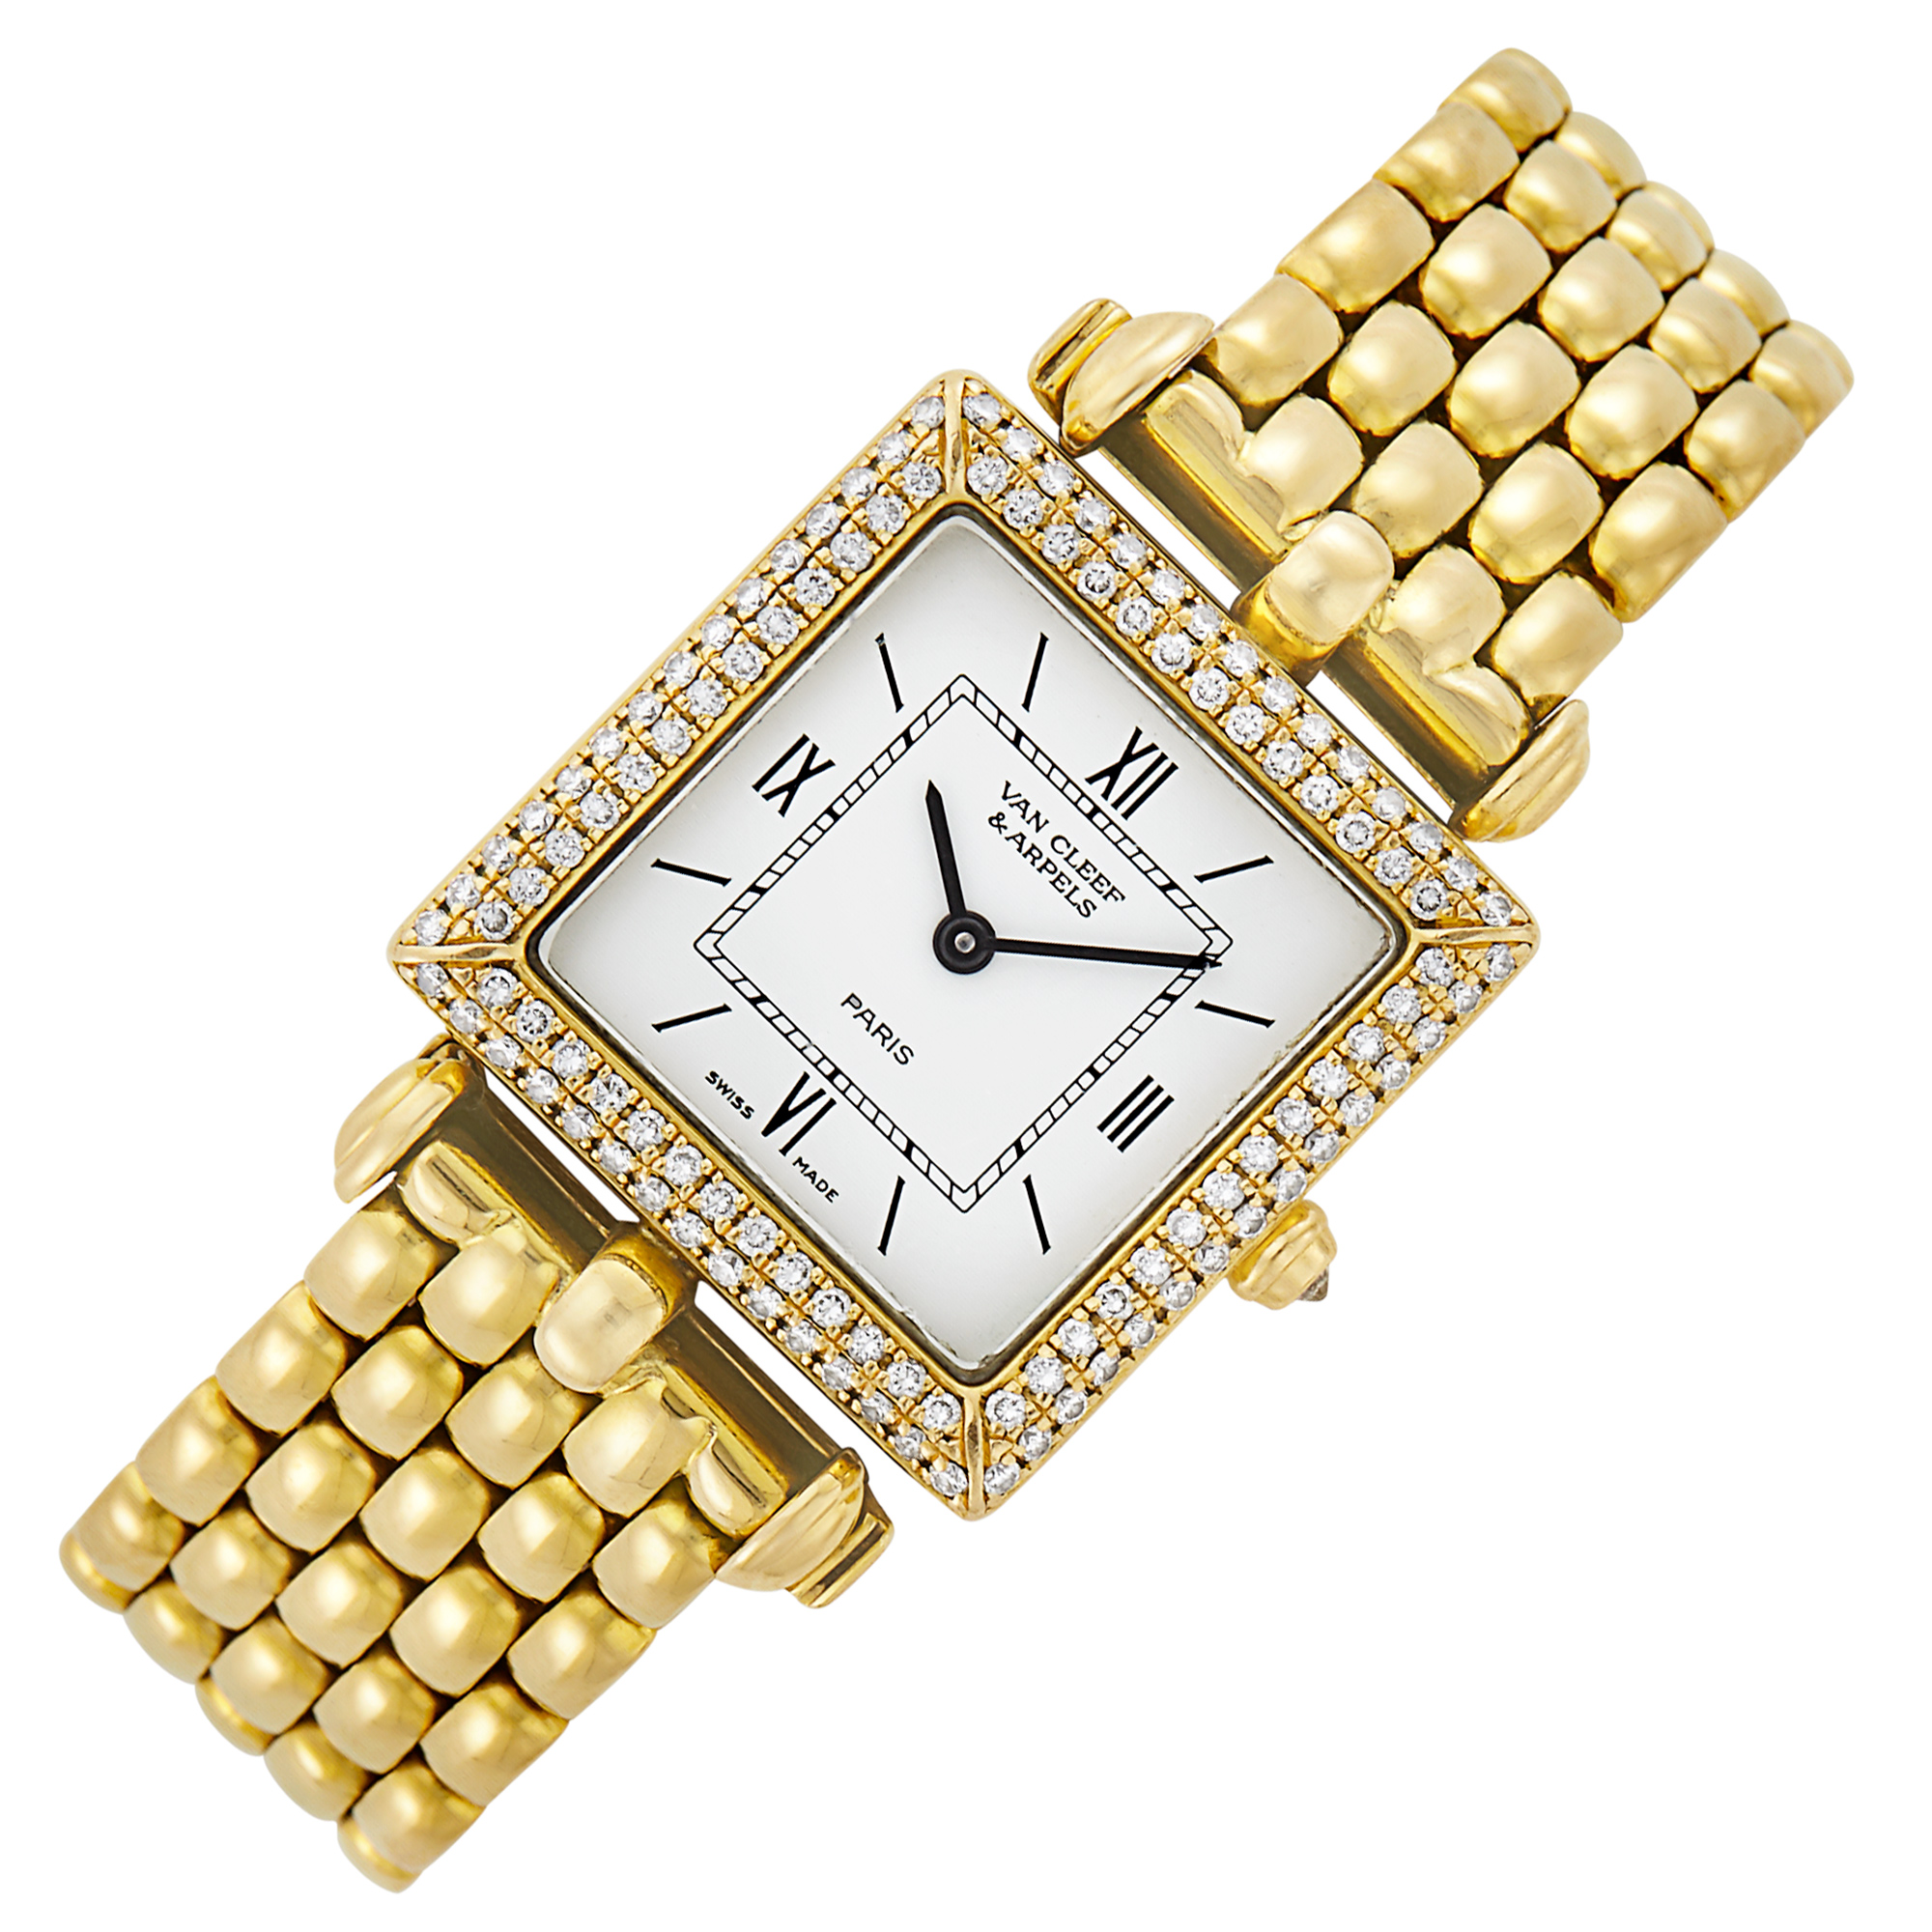 Lot image - Gold and Diamond Classique Wristwatch, Van Cleef & Arpels